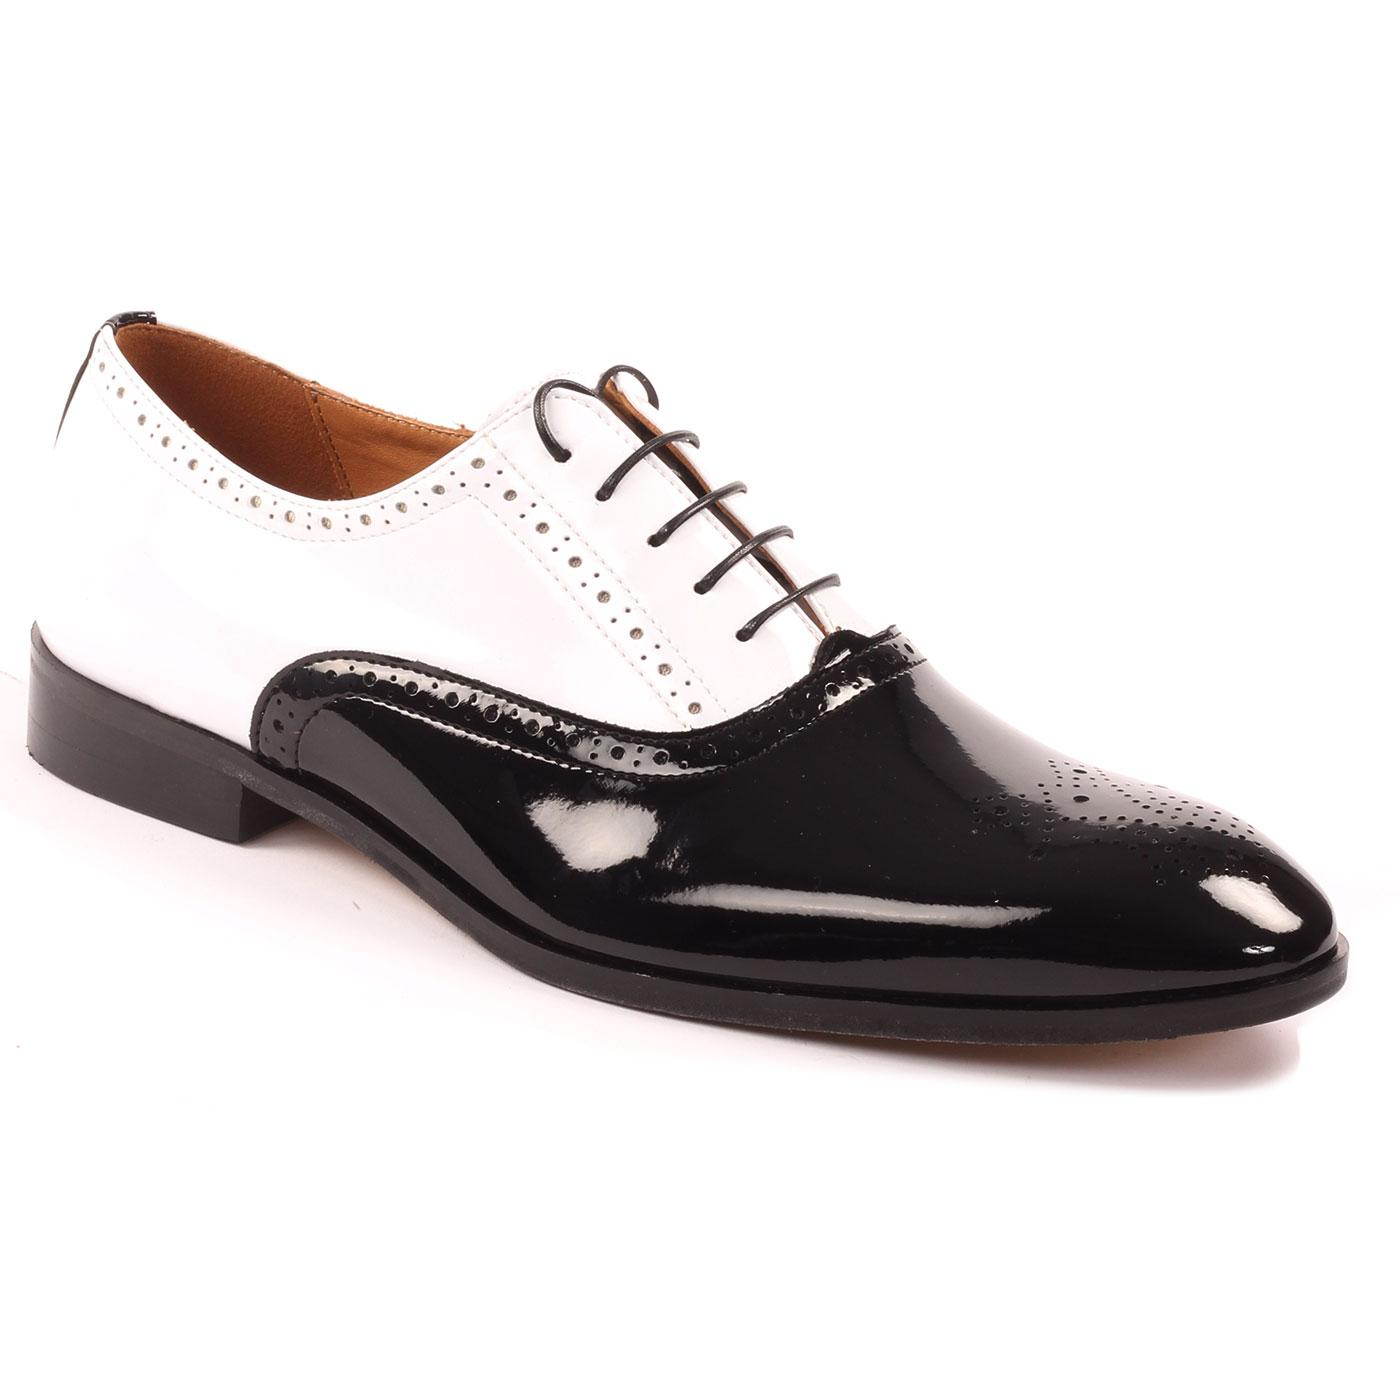 LACUZZO Mod Two Tone Patent leather Spatz Brogues